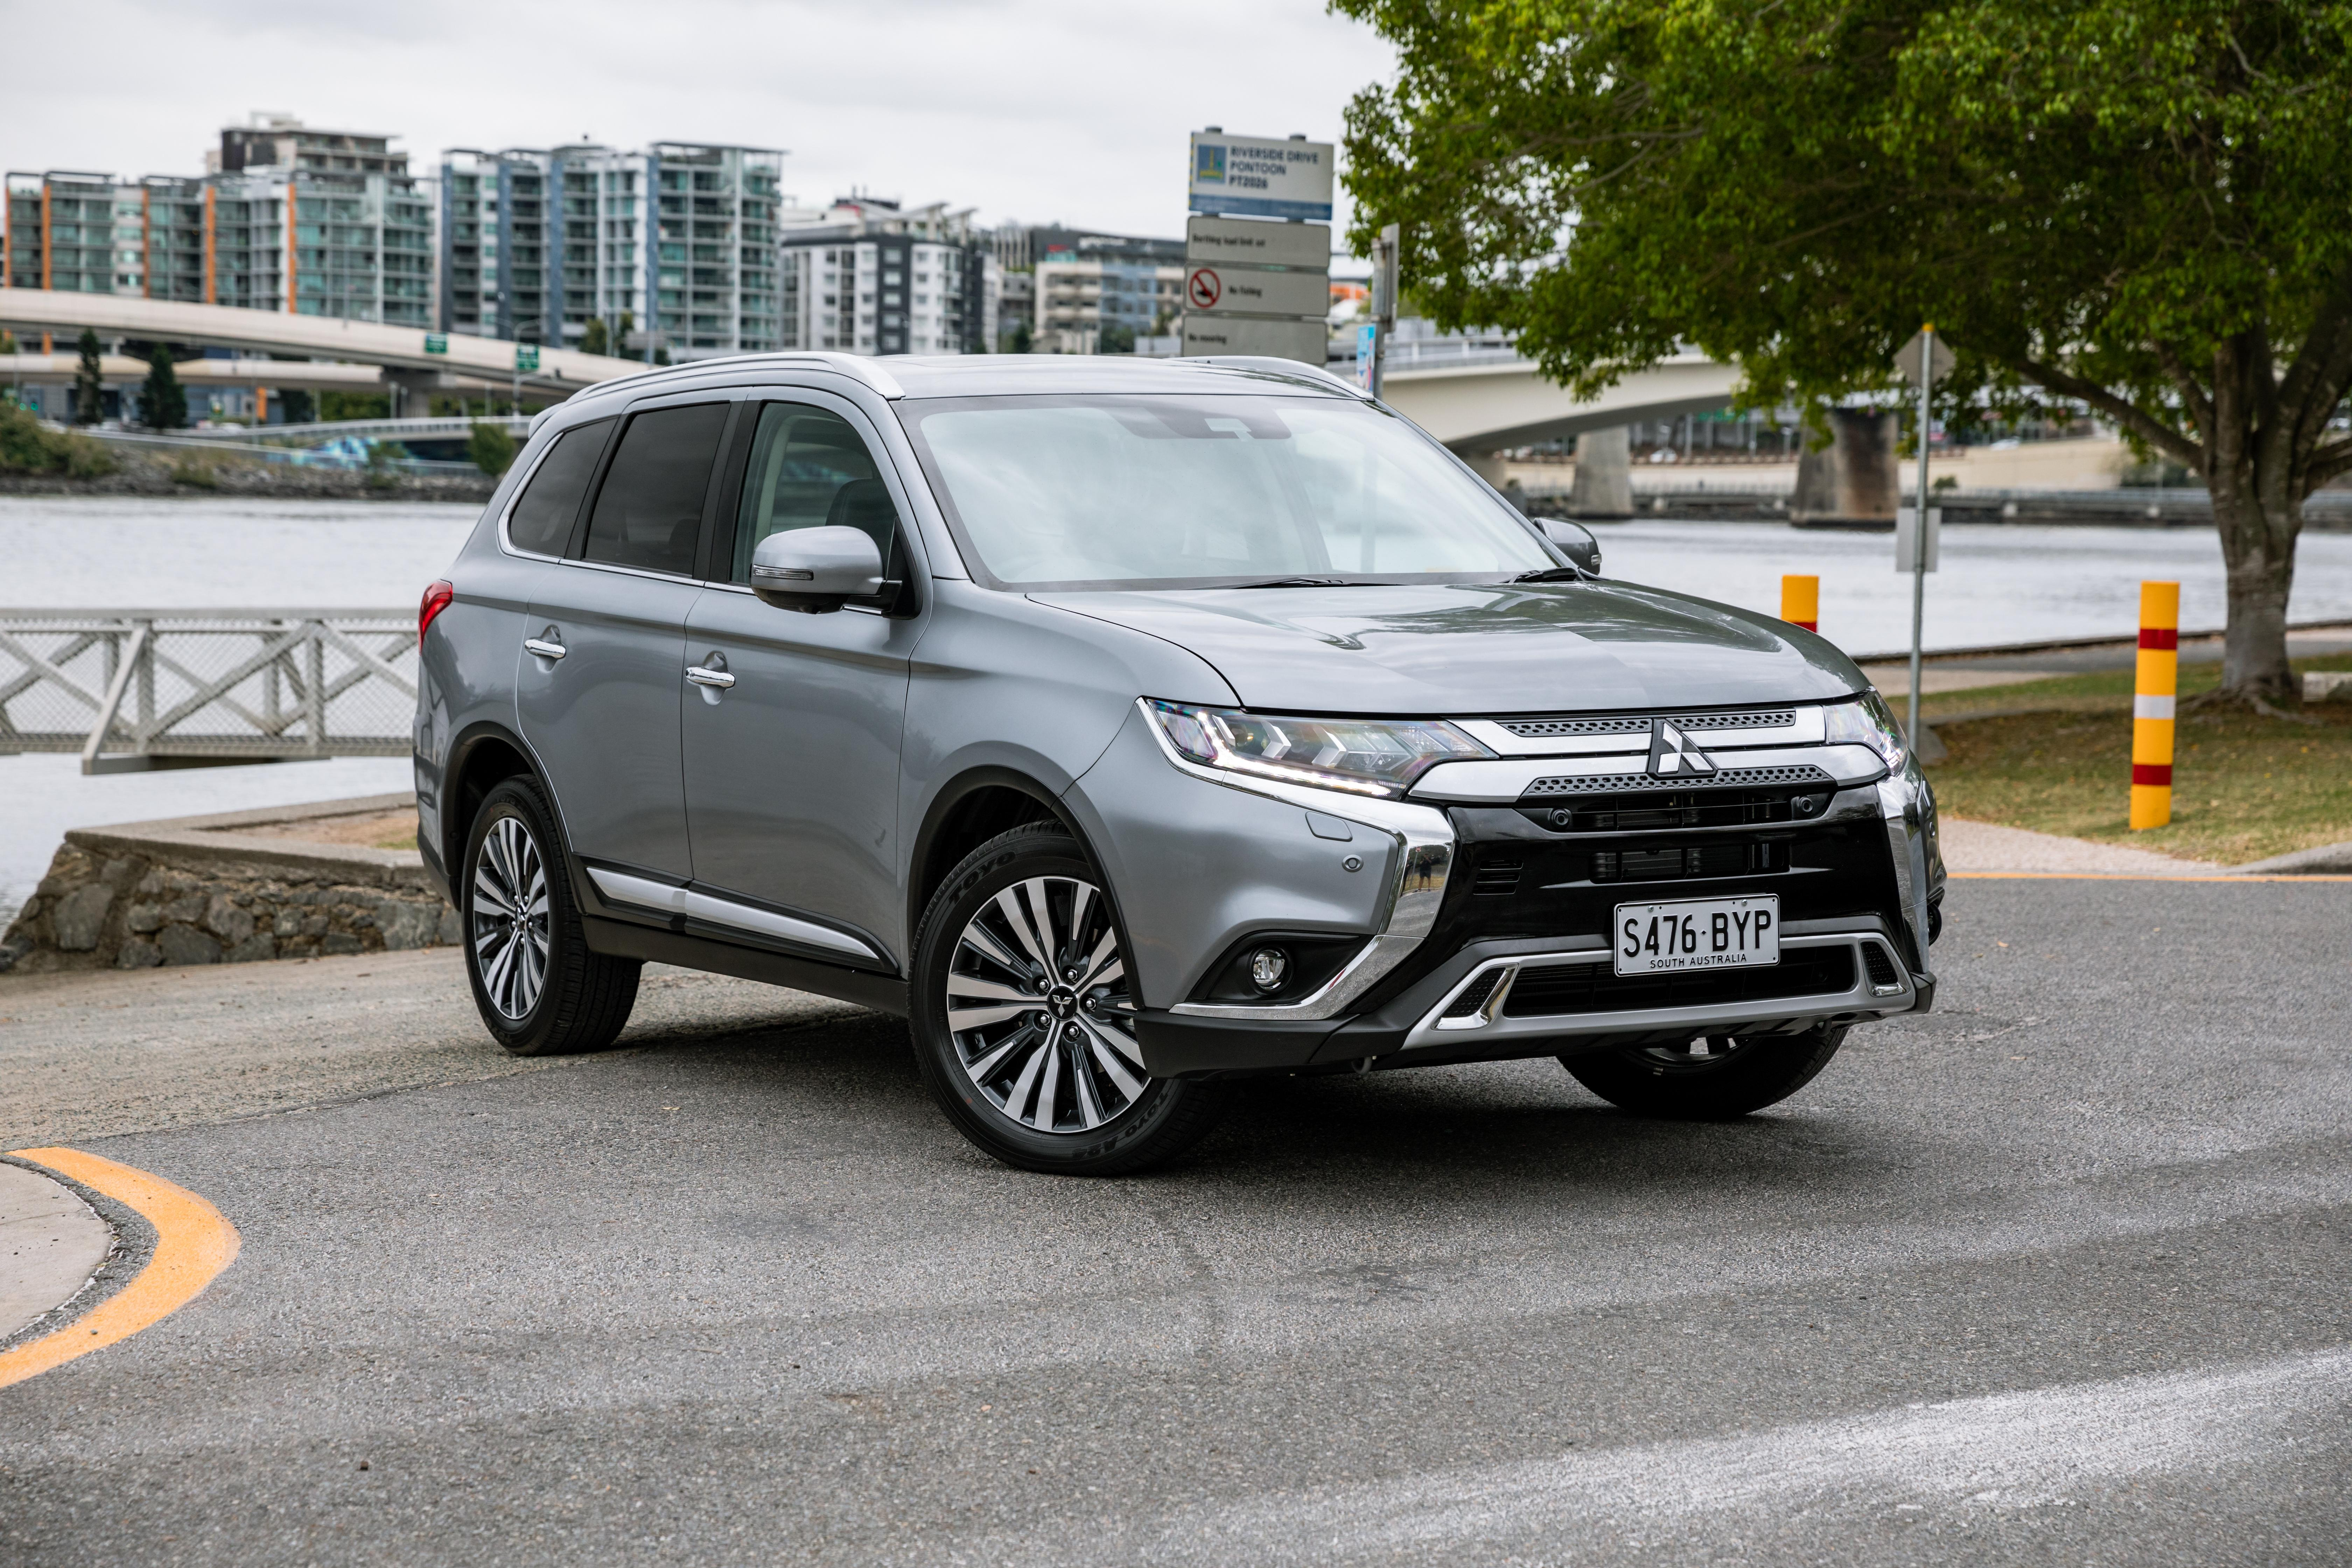 2021 Mitsubishi Outlander stock running low ahead of new model